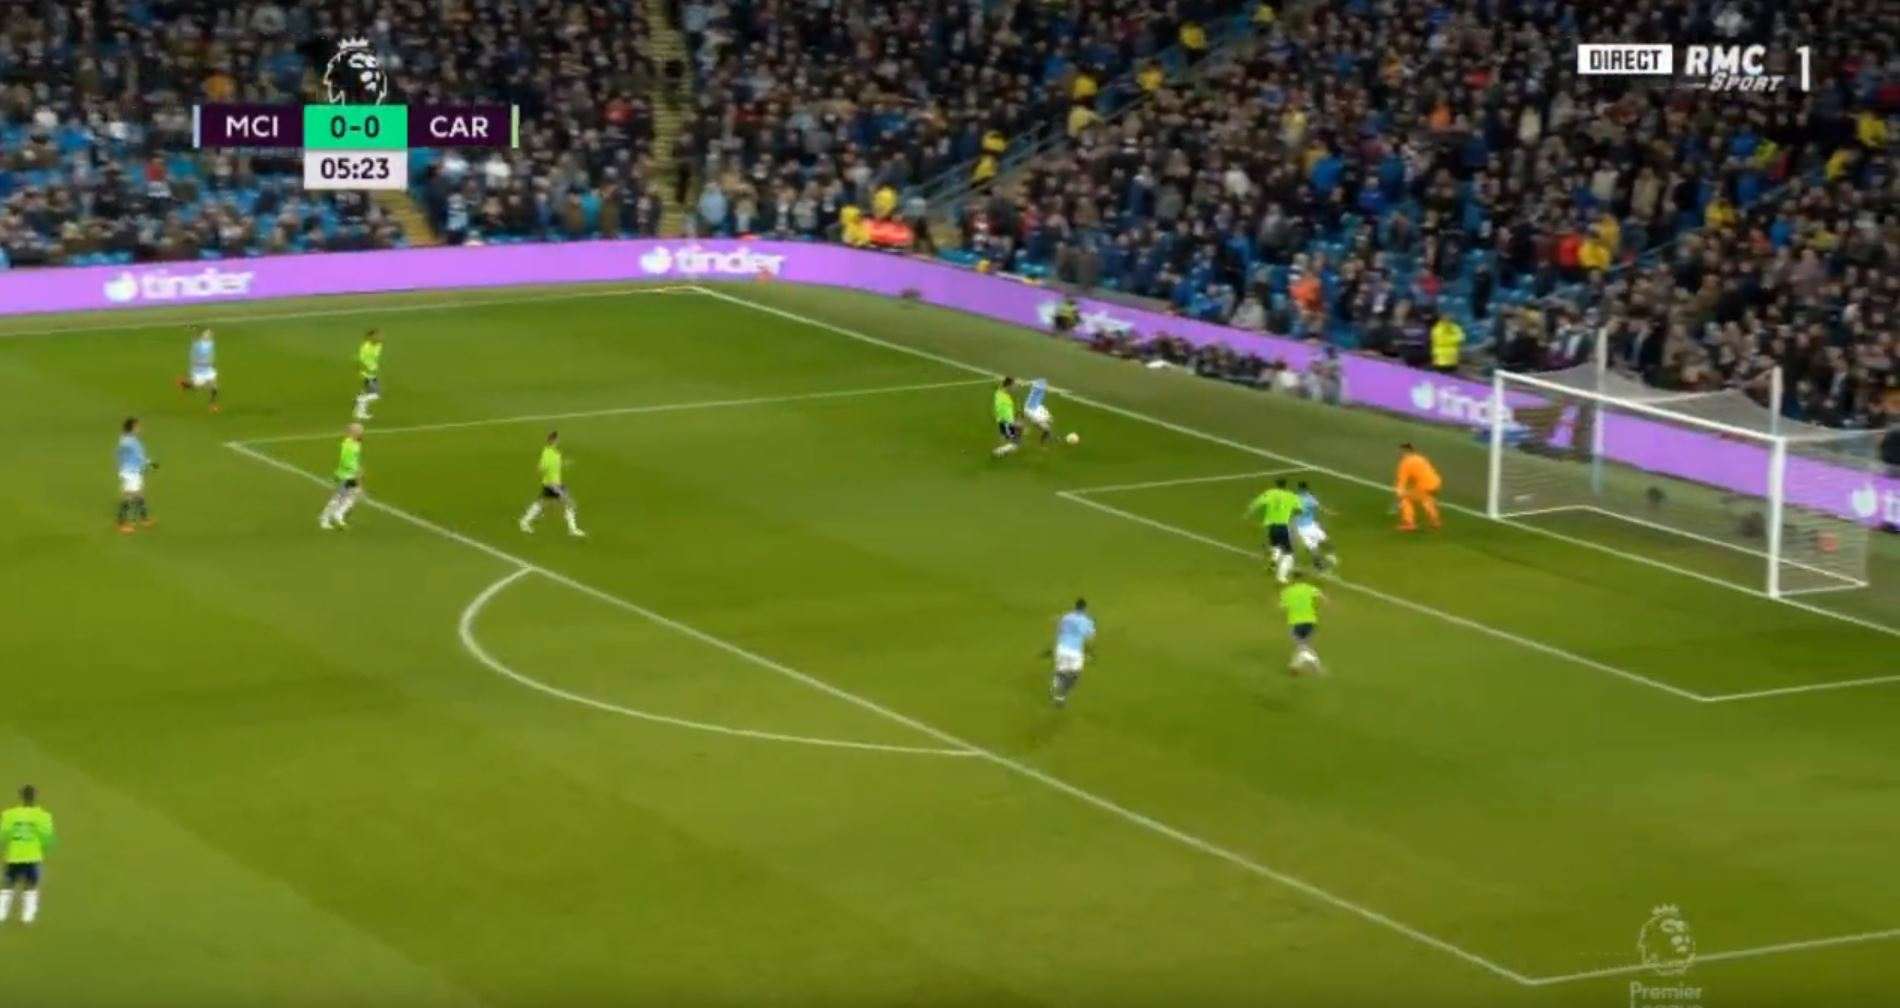 WATCH: De Bruyne Scores From A Ridiculous Angle